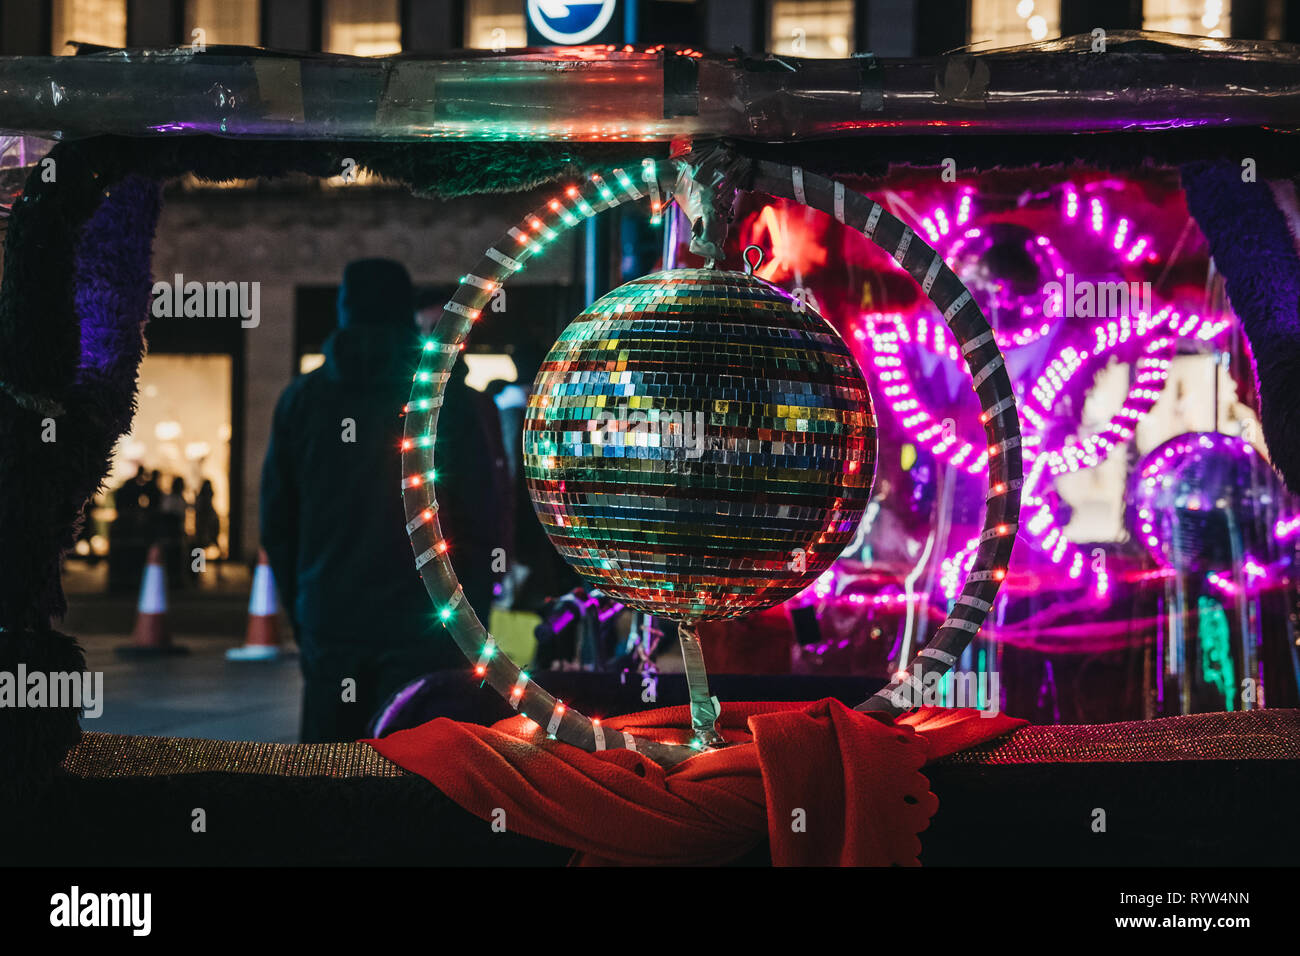 London, UK - March 9, 2019: Colourful disco ball on a rickshaw on Oxford Street, London, at night. Oxford Street if one of the most famous streets in  - Stock Image